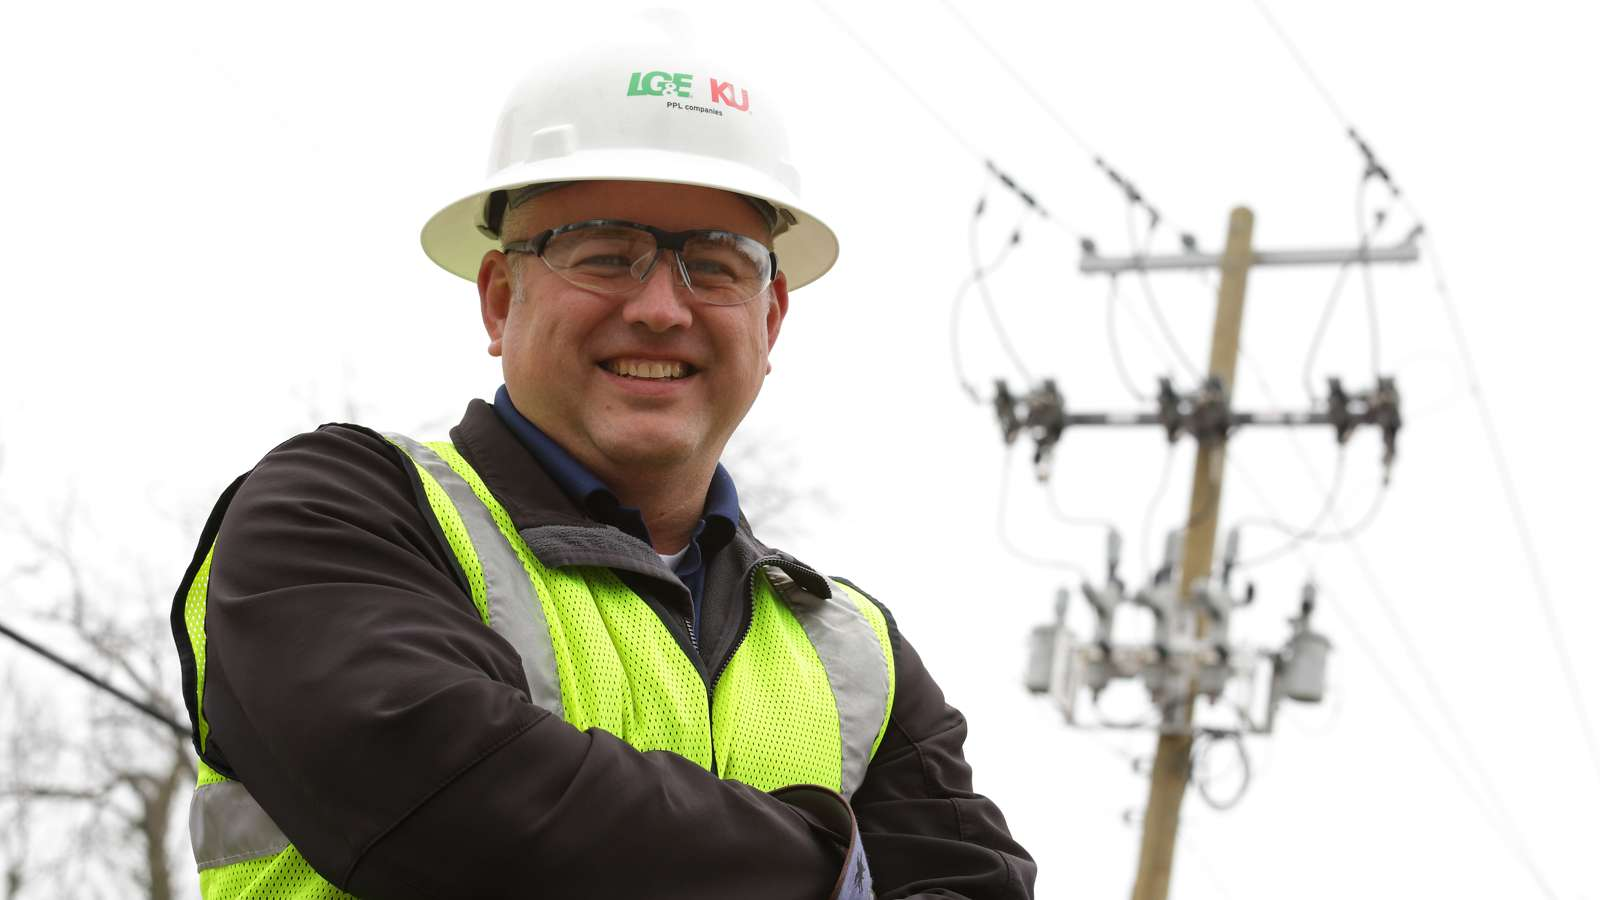 Lineman standing in front of a utility pole with reclosers